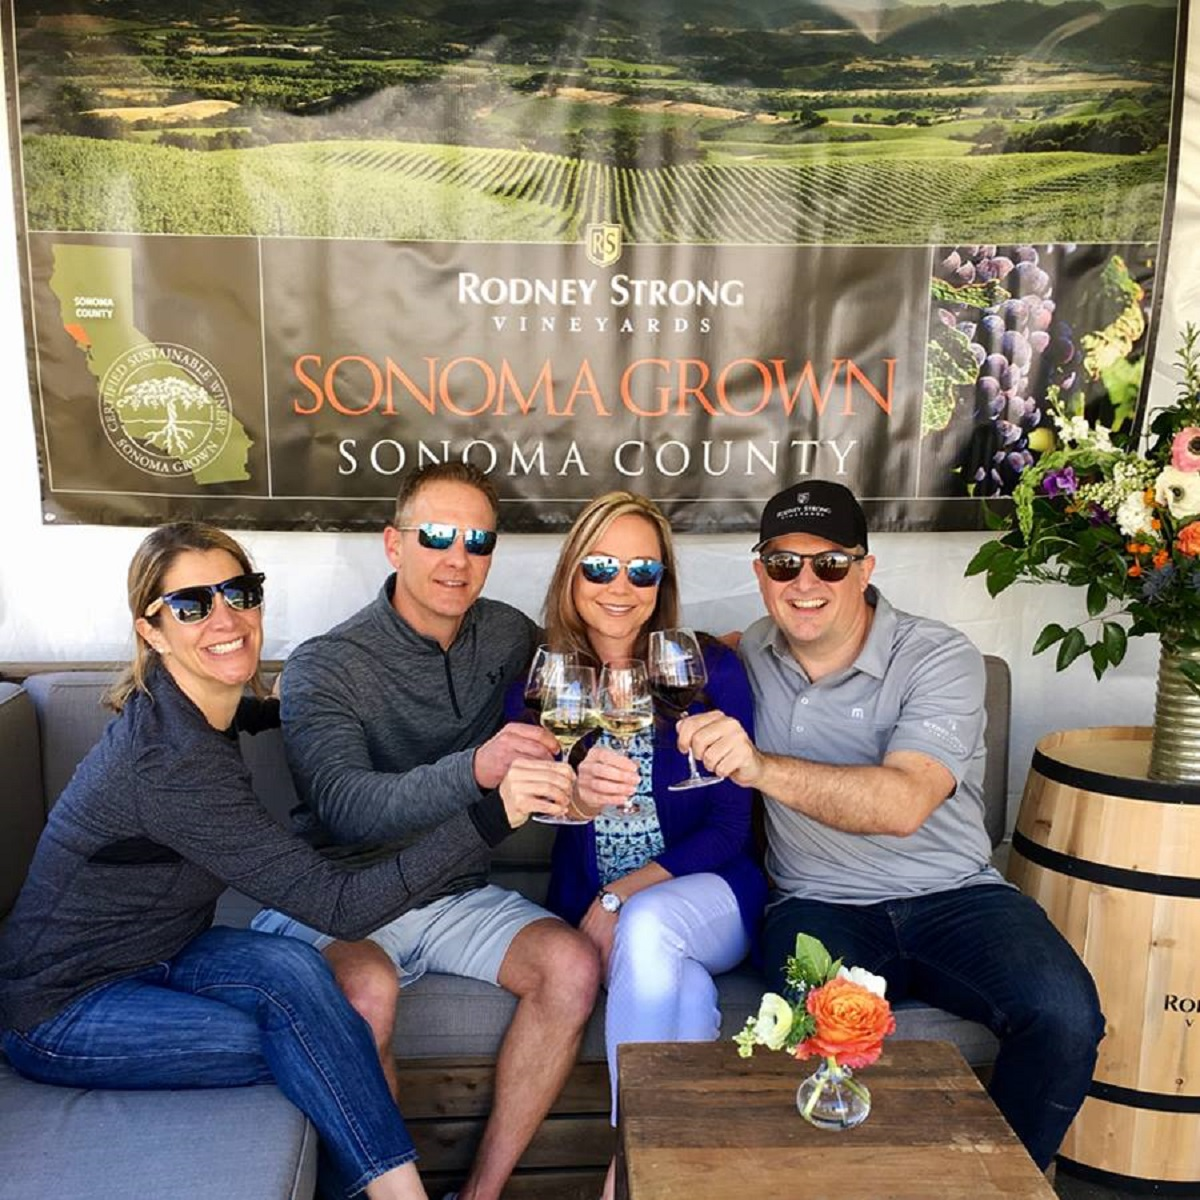 Image by: Rodney Strong Vineyards  | Just Wine